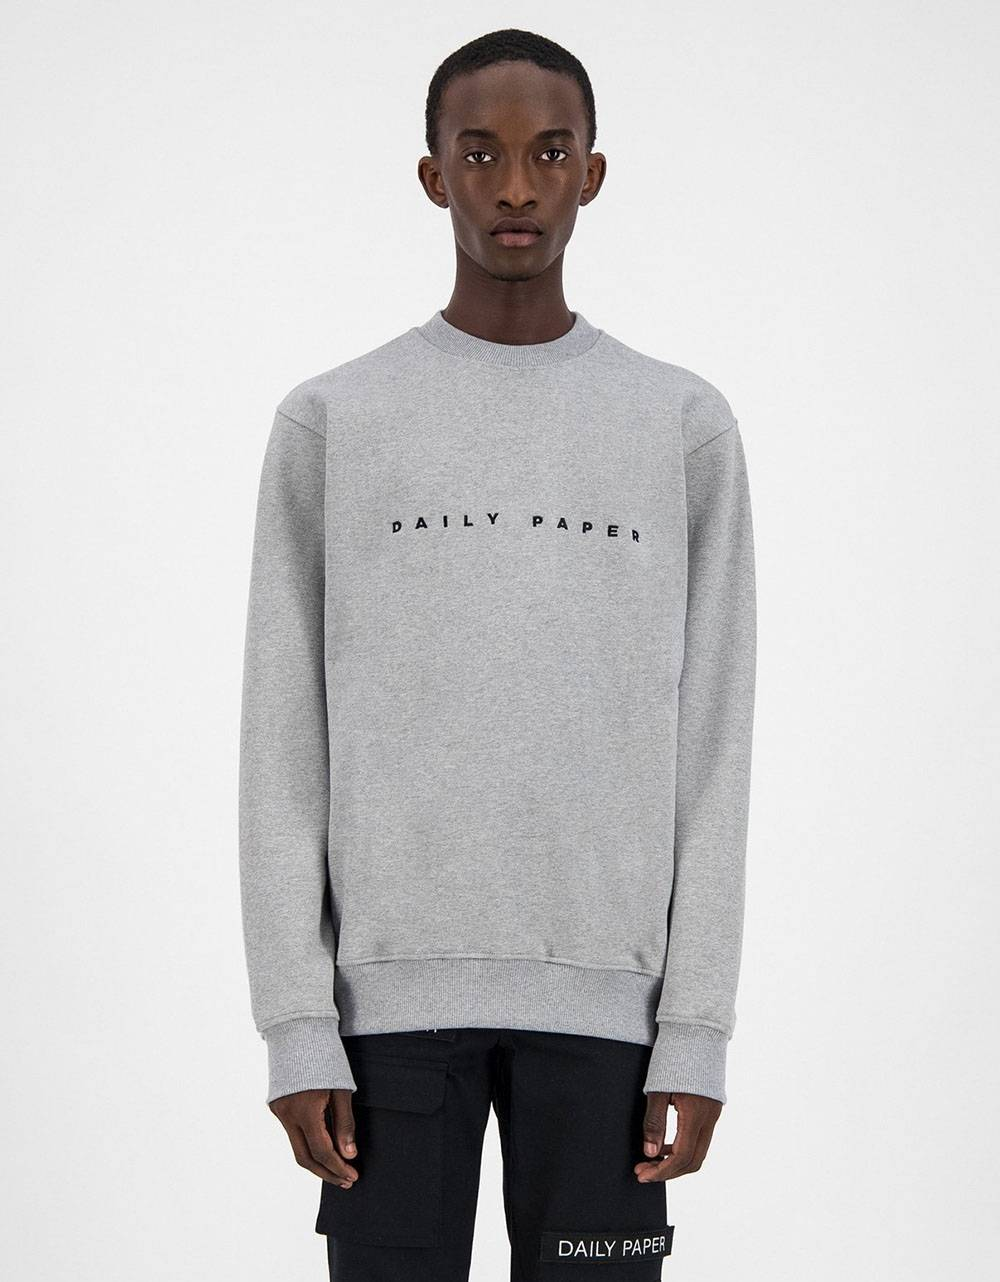 Daily Paper Alias crewneck sweater - Grey/Black DAILY PAPER Sweater 86,89 €